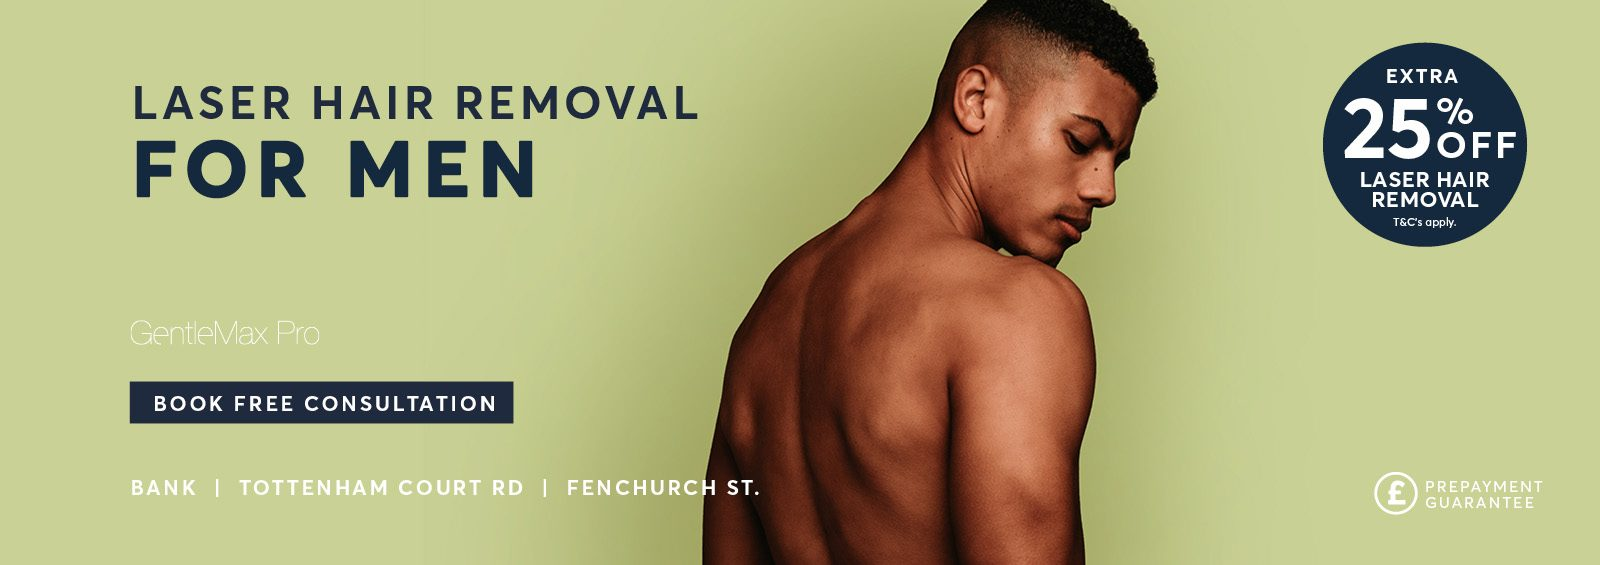 Laser Hair Removal for Men Autumn 25 % Off